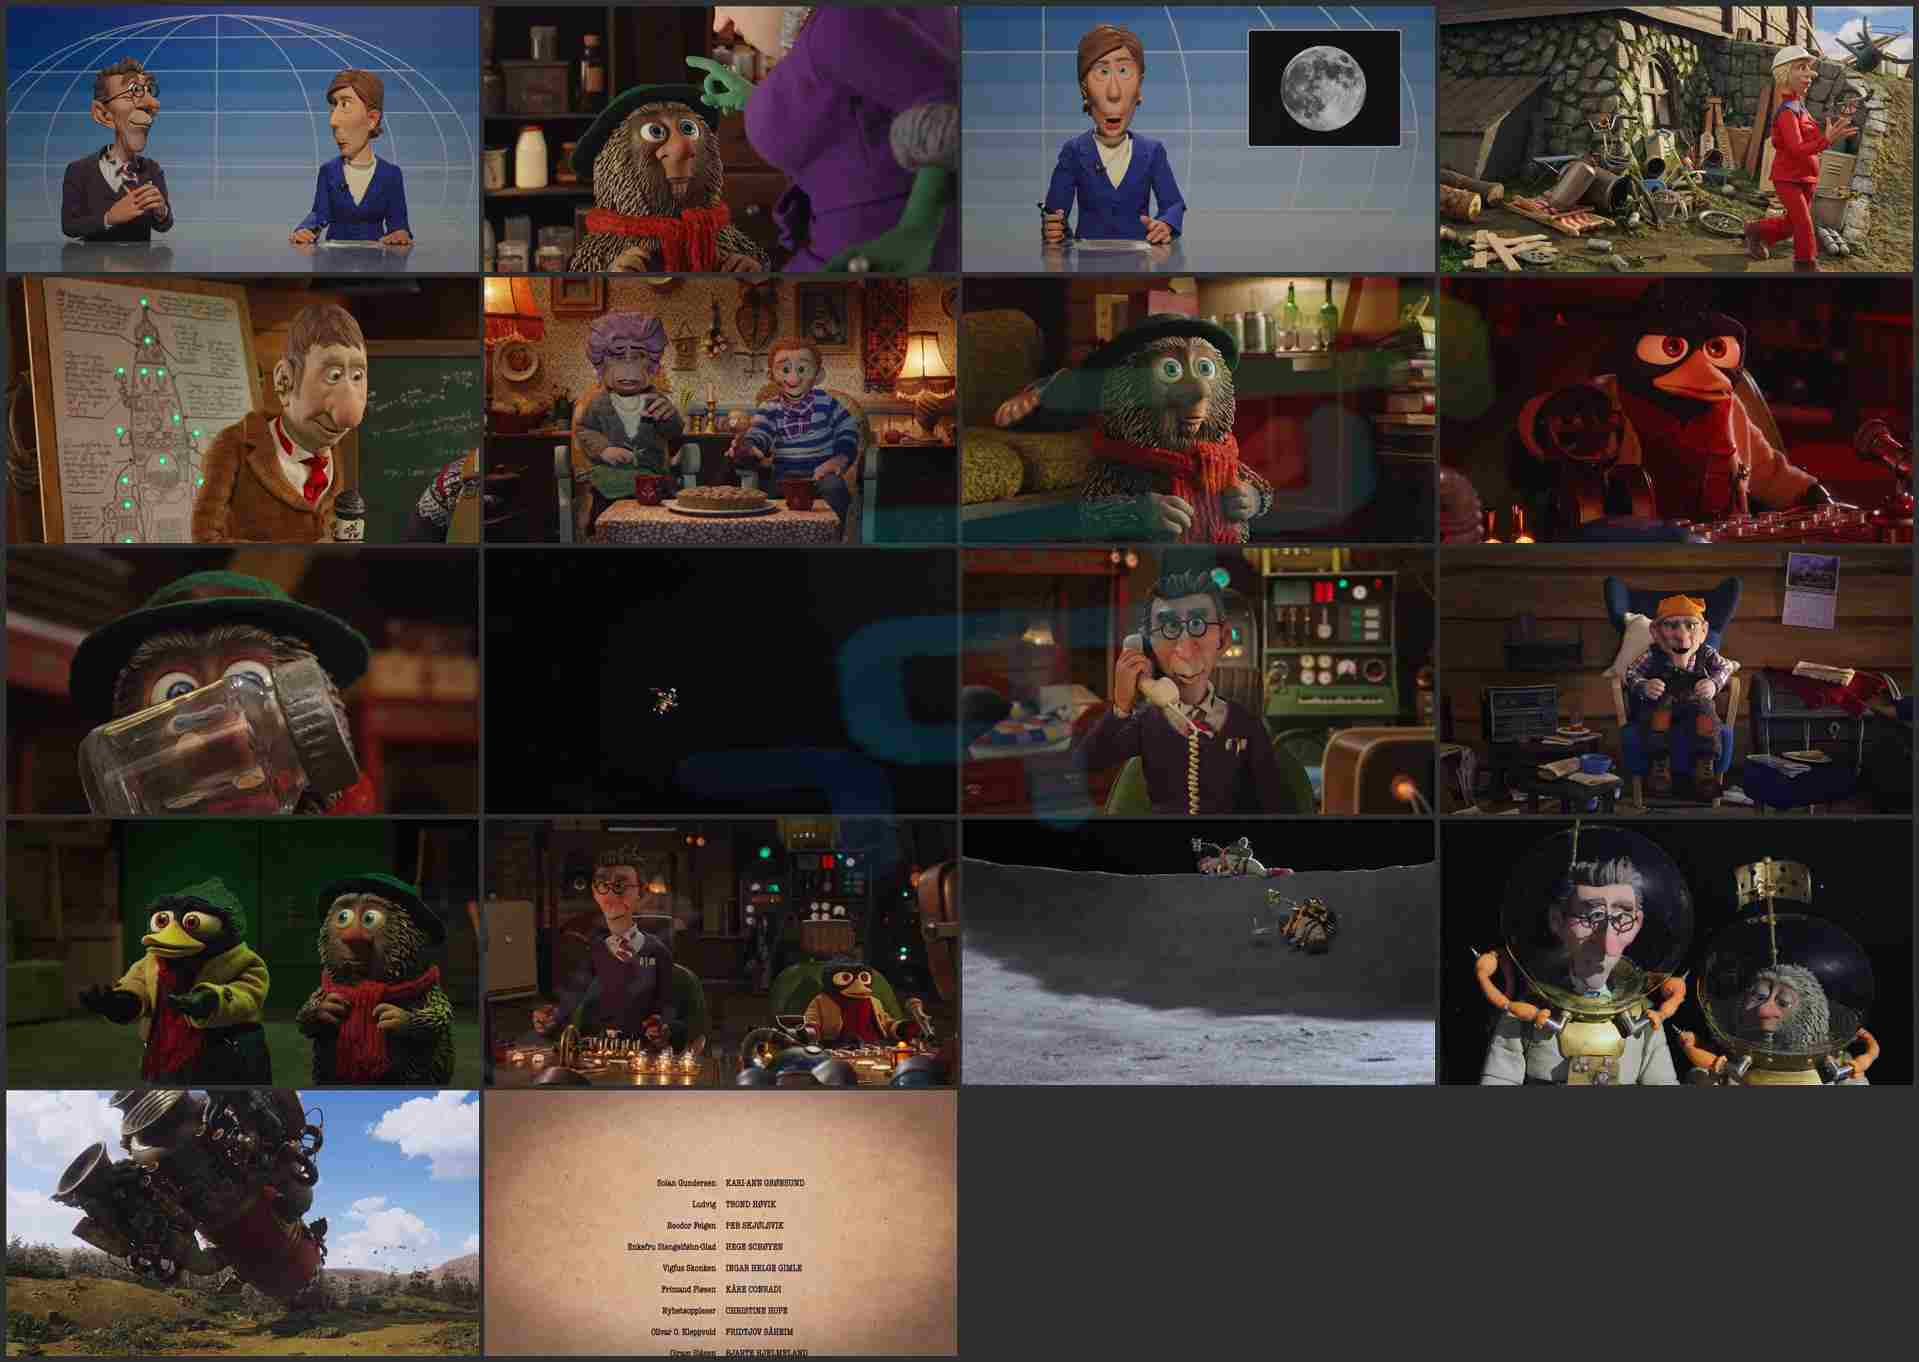 Louis_and_Luca_–_Mission_to_the_Moon_2018_720p_WEB-DL_Download.ir.mkv